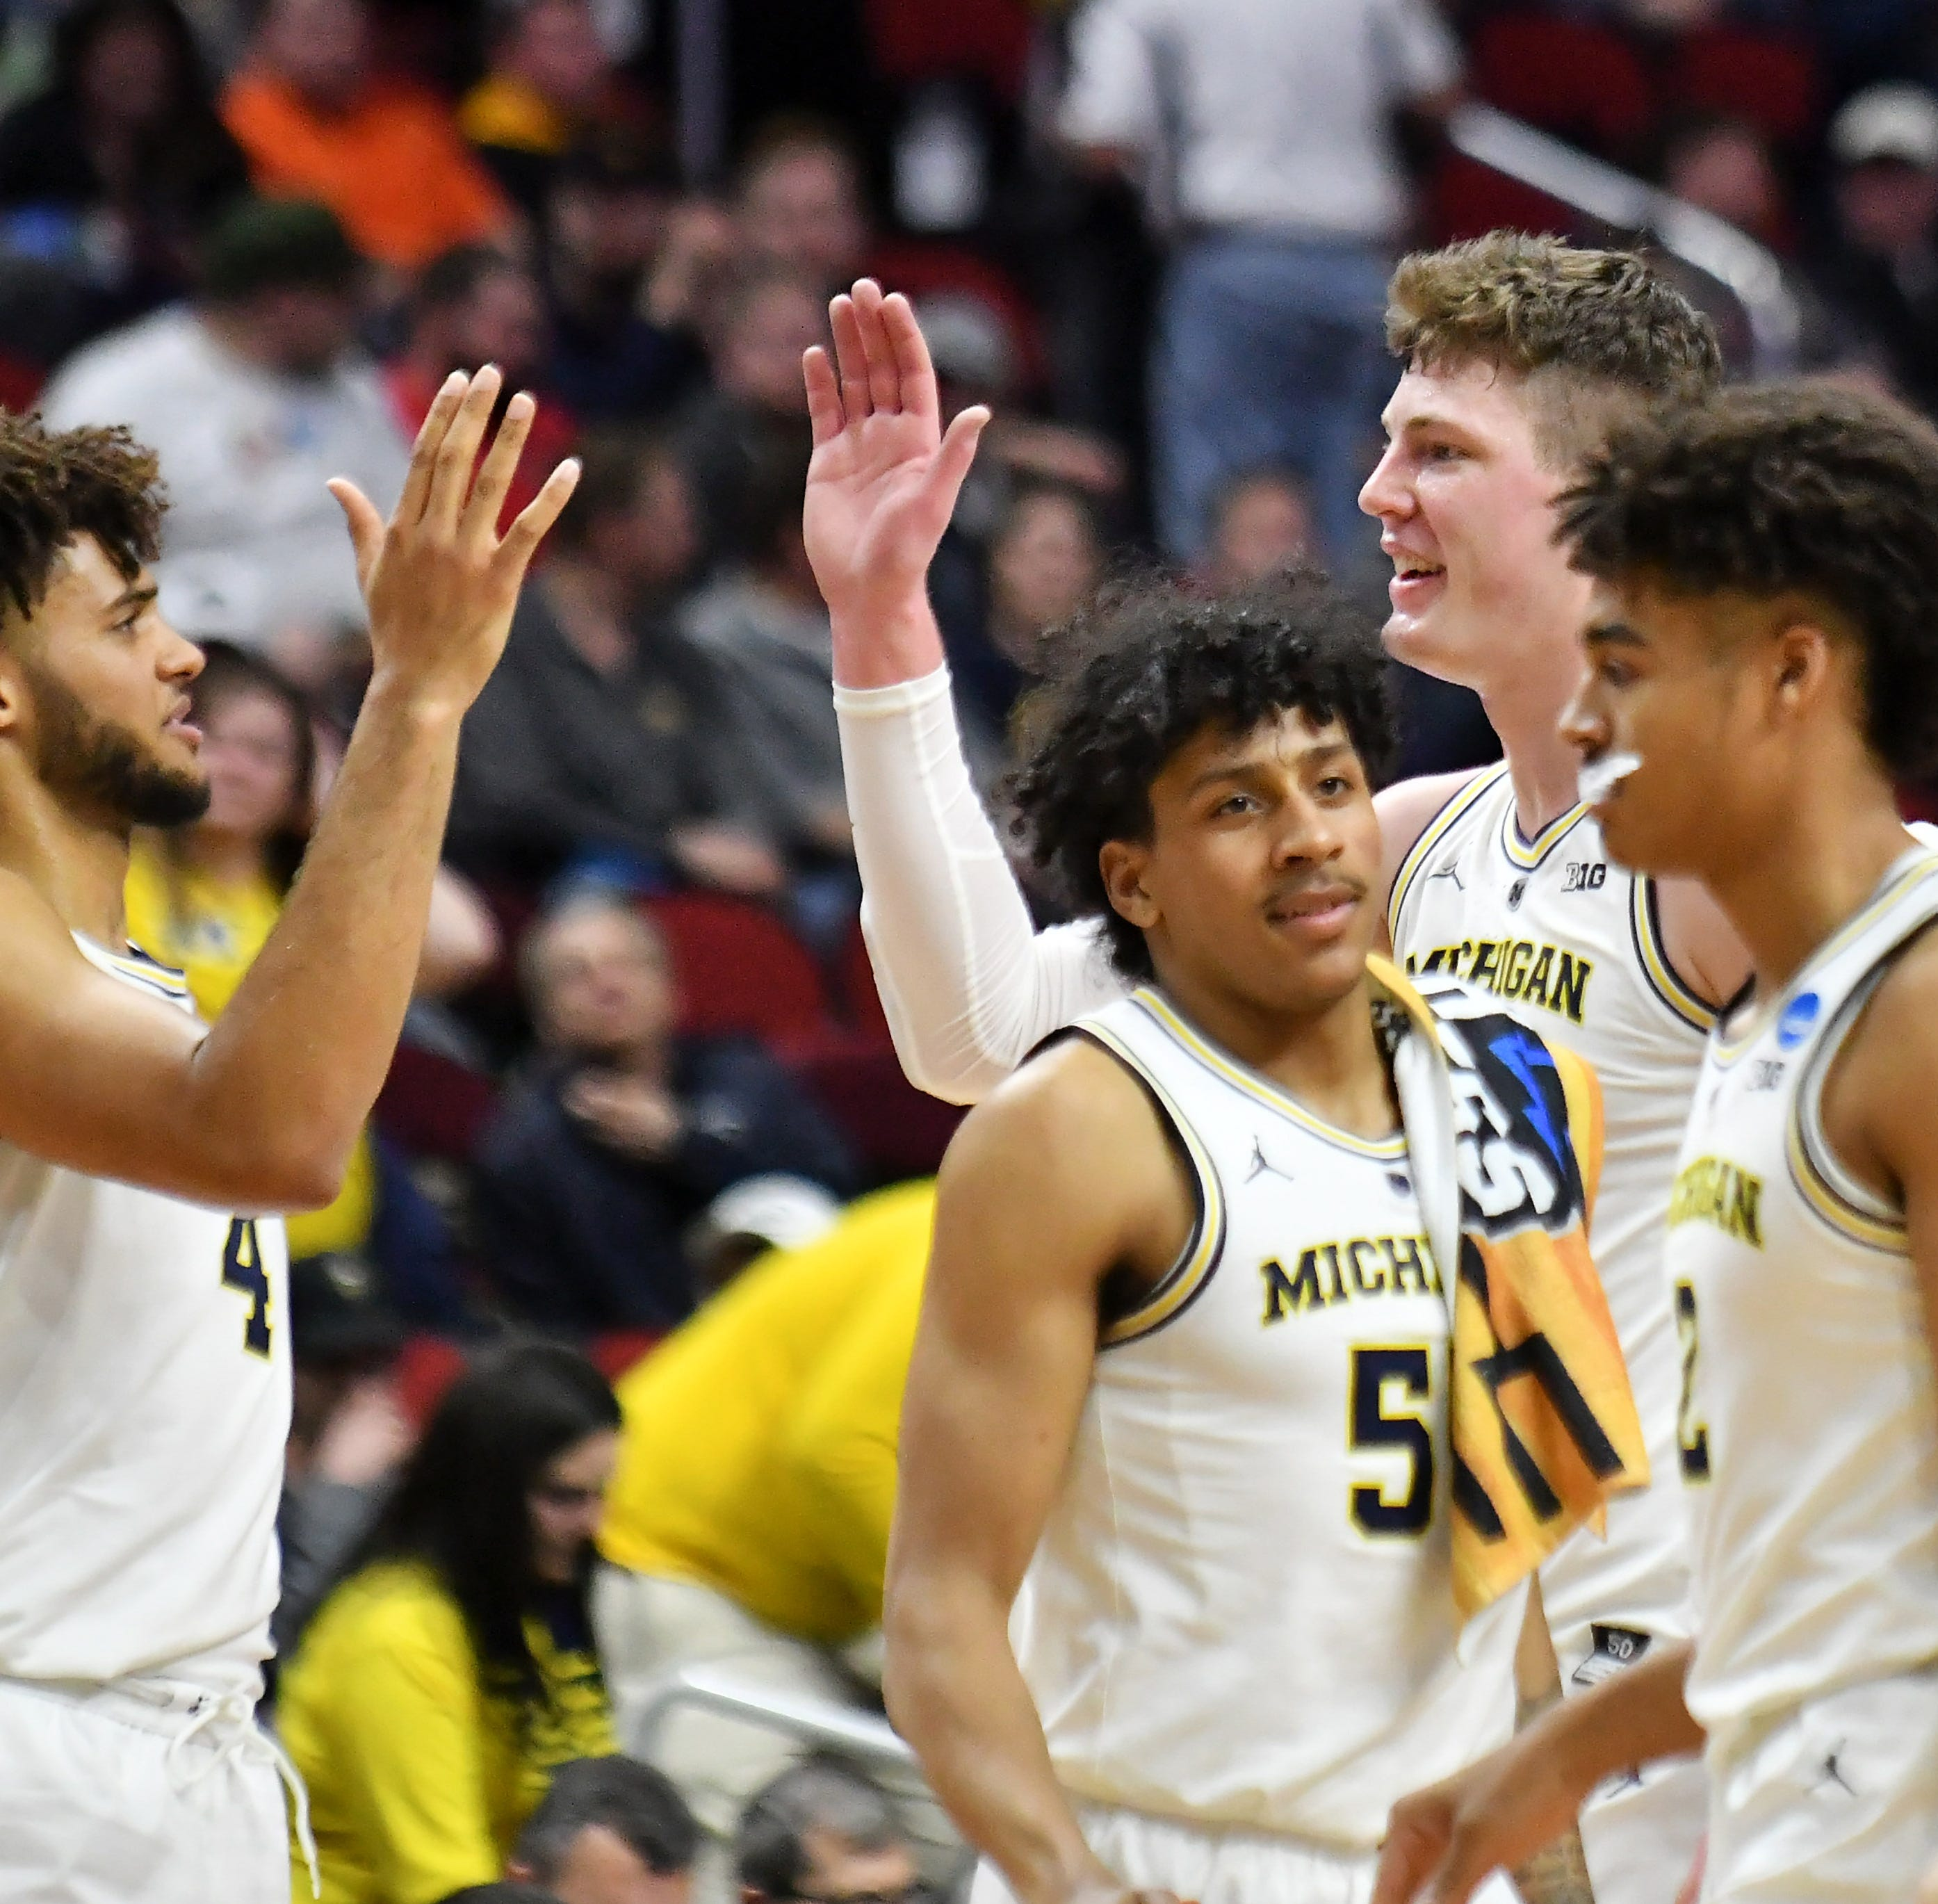 'We were ready': Michigan mashes Montana in rematch